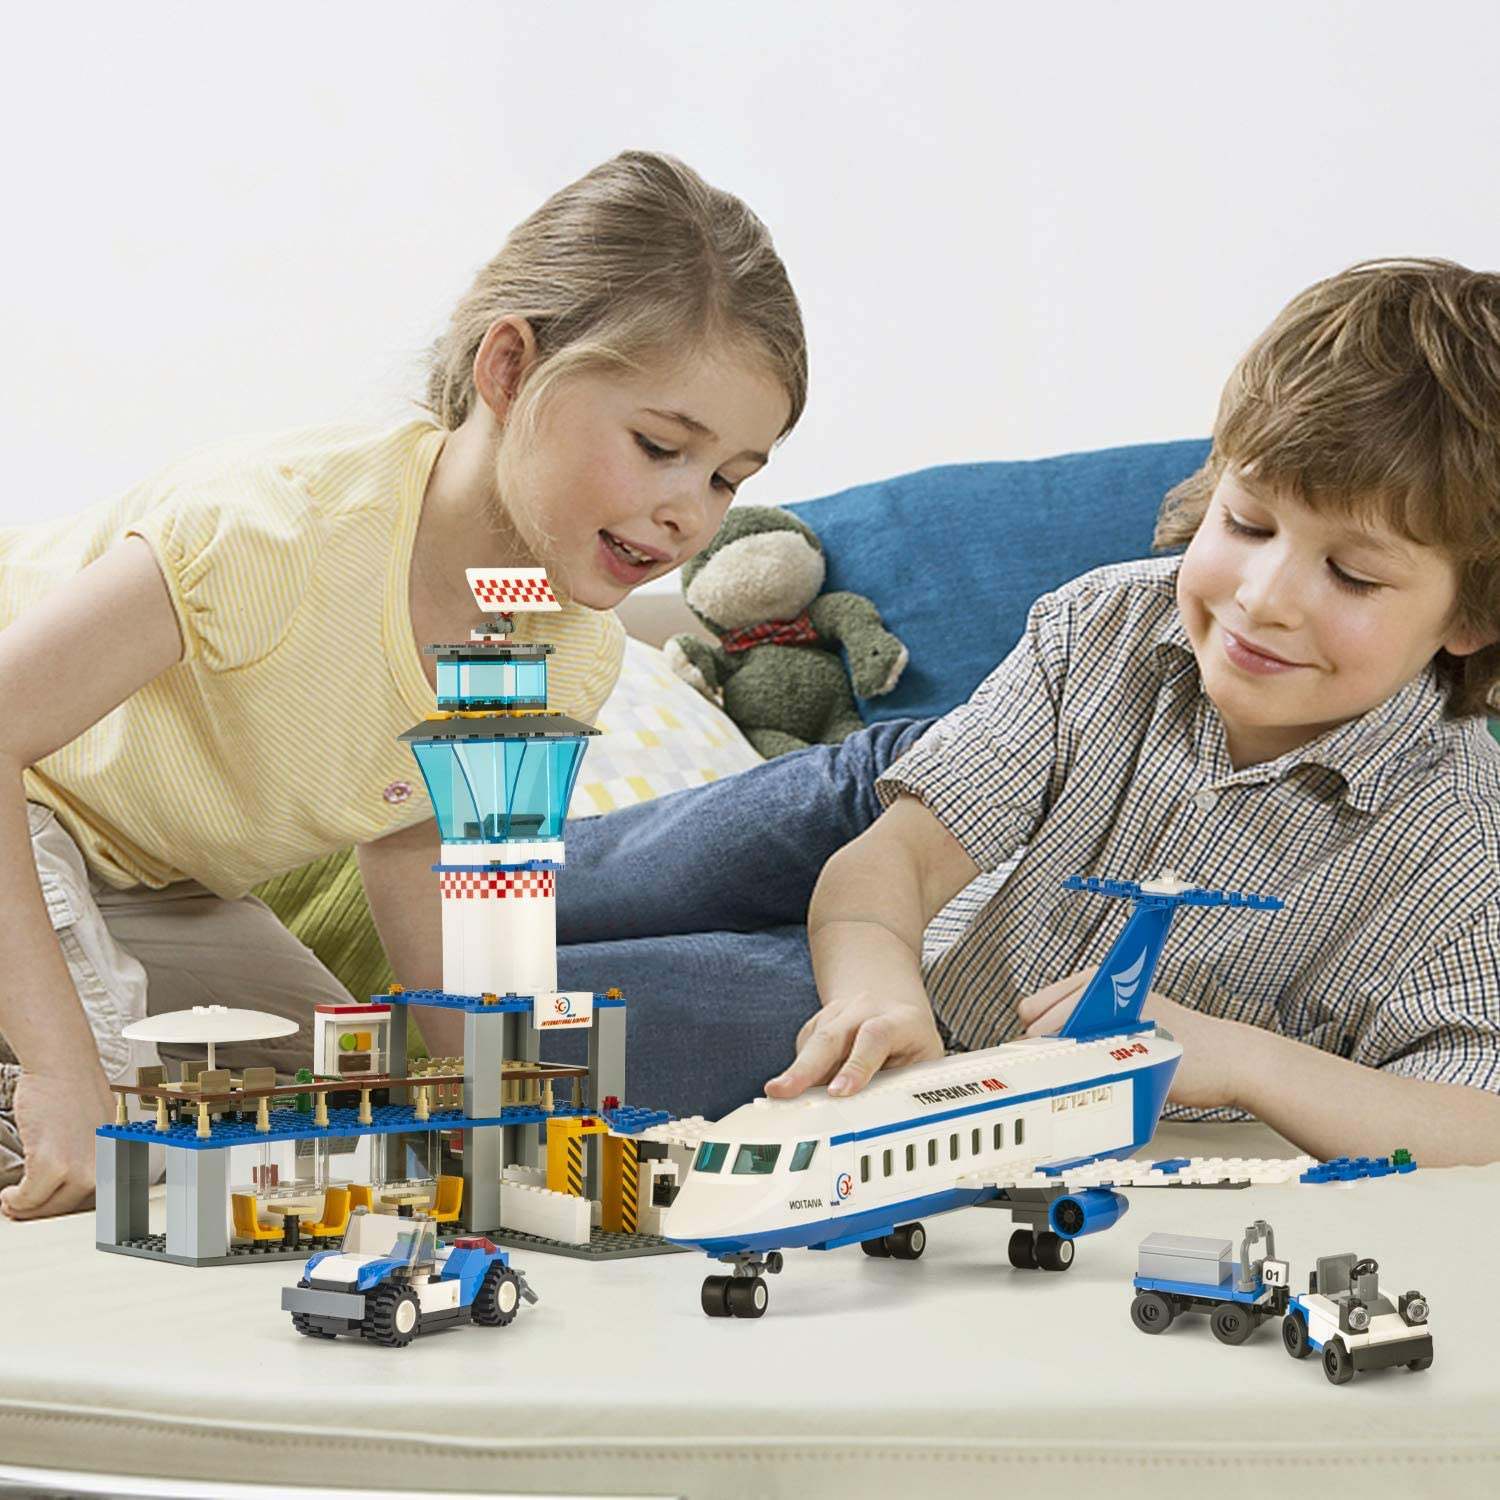 652 Pieces with Helicopter // Airport // Passenger // Lorry Truck // Car City Airplane Station Building Kits Toys,STEM Building Sets for Kids Best Gift for 6-12 Boys and Girls